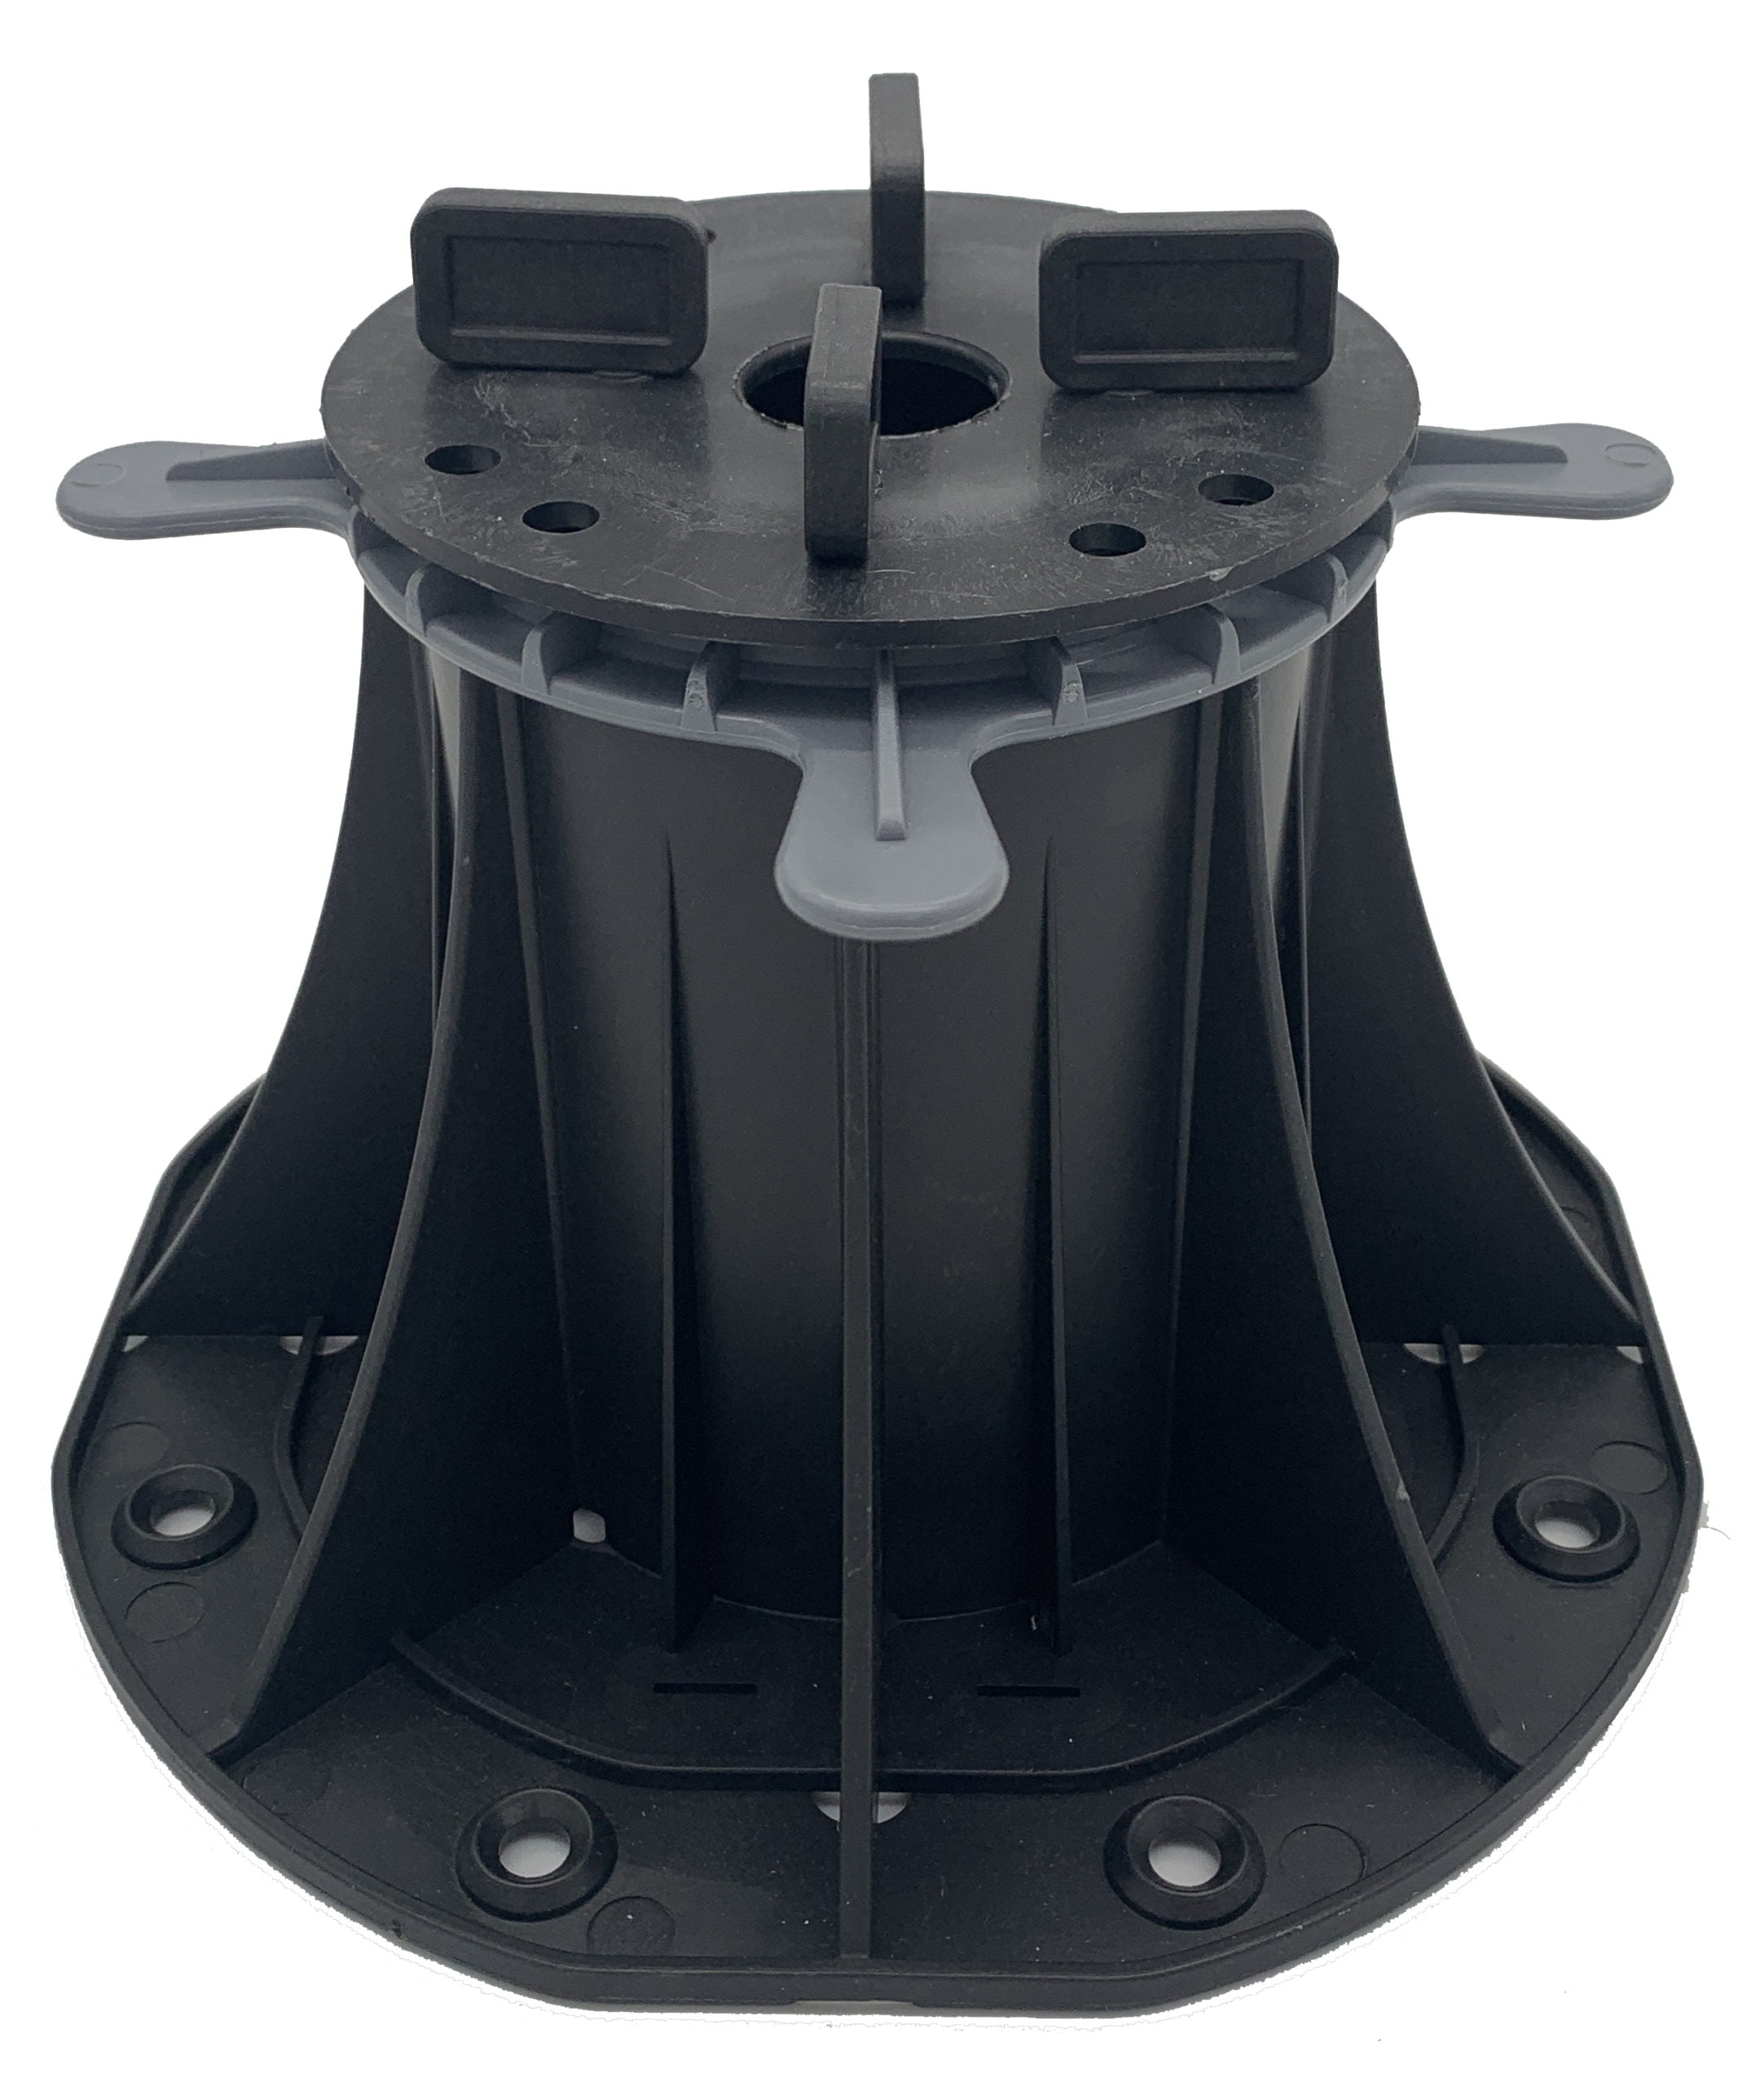 "SD04 Adjustable Pedestal - 4.75"" - 8.25"""